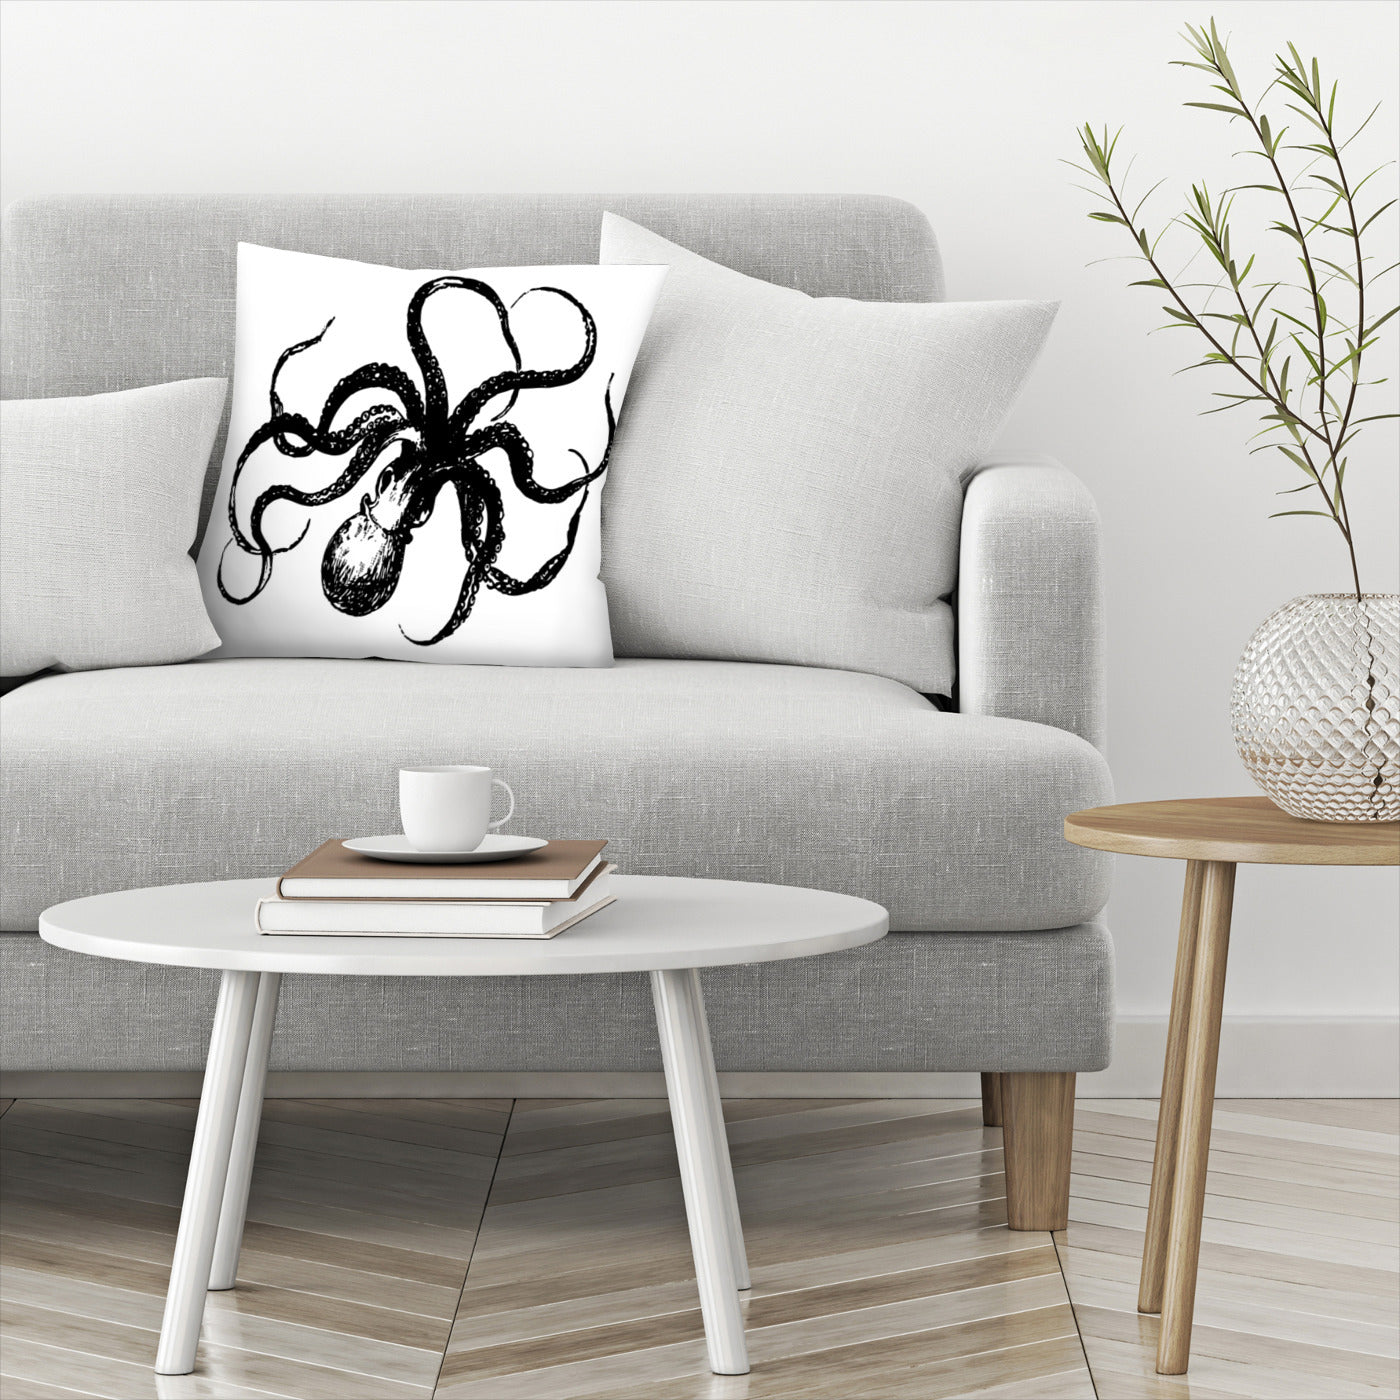 Octopus Black by Amy Brinkman Decorative Pillow - Decorative Pillow - Americanflat